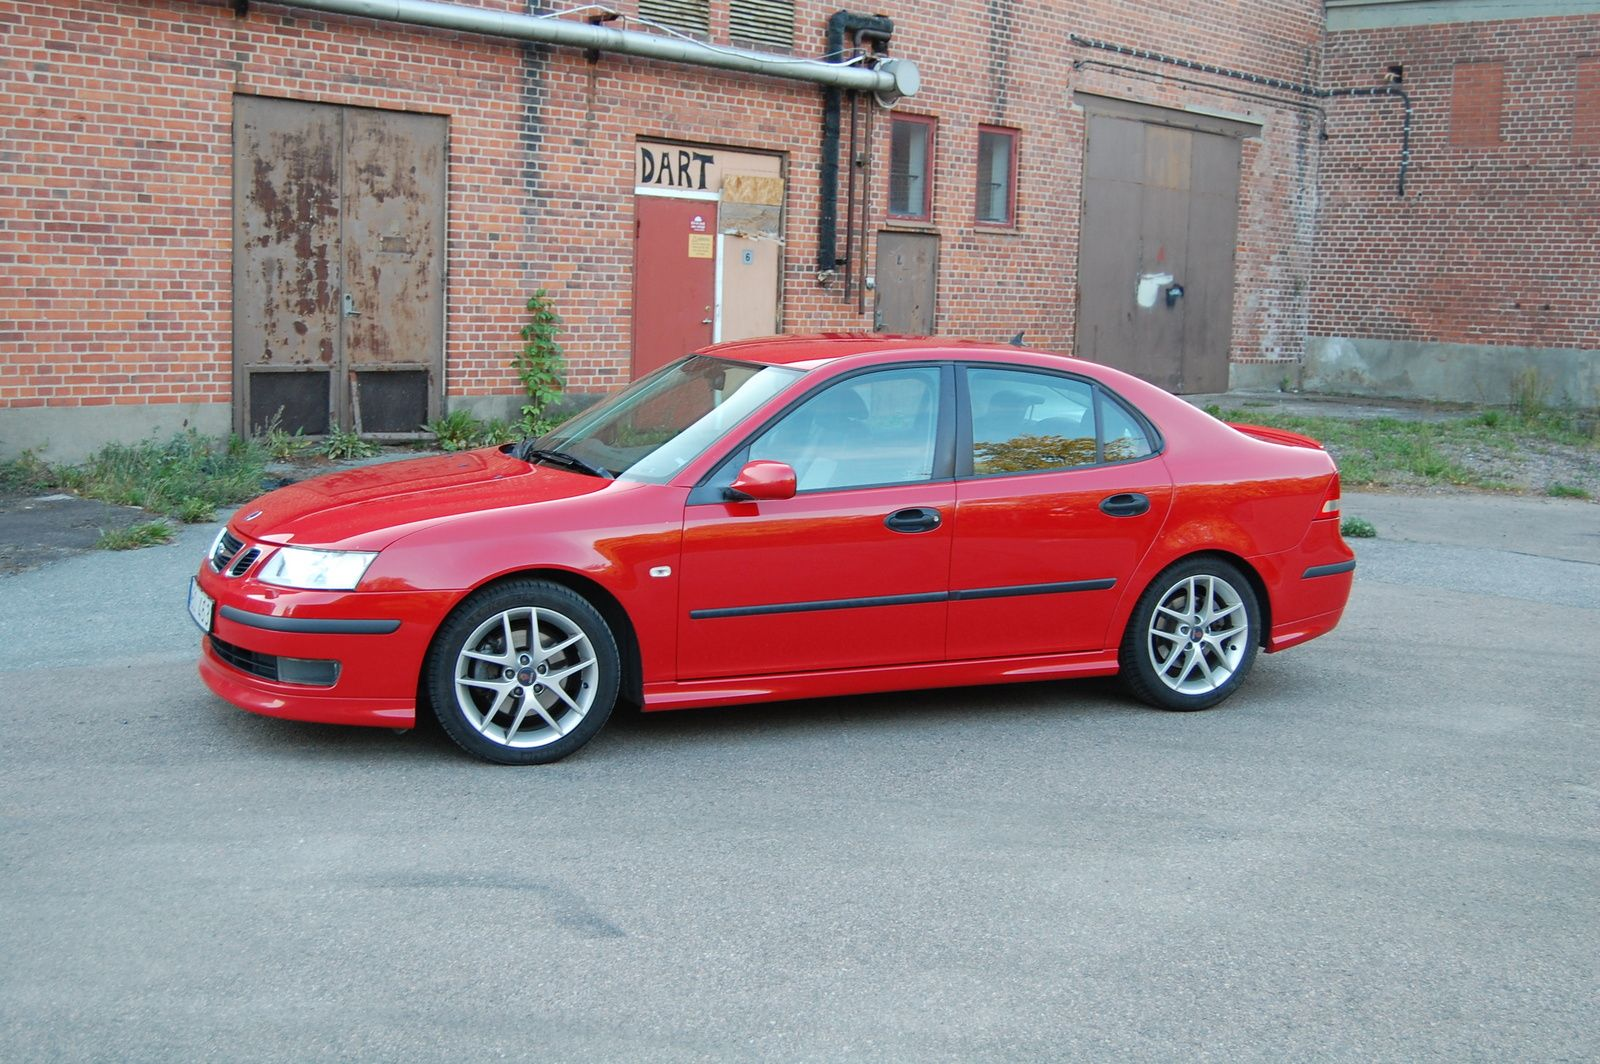 This Is The 2004 Saab 9 3 Aero Equipped With A 2 8 V6 Turbo From The Factory Producing 250 Hp This Car Gets Up And Goes Available In Sedan Wagon And Conver